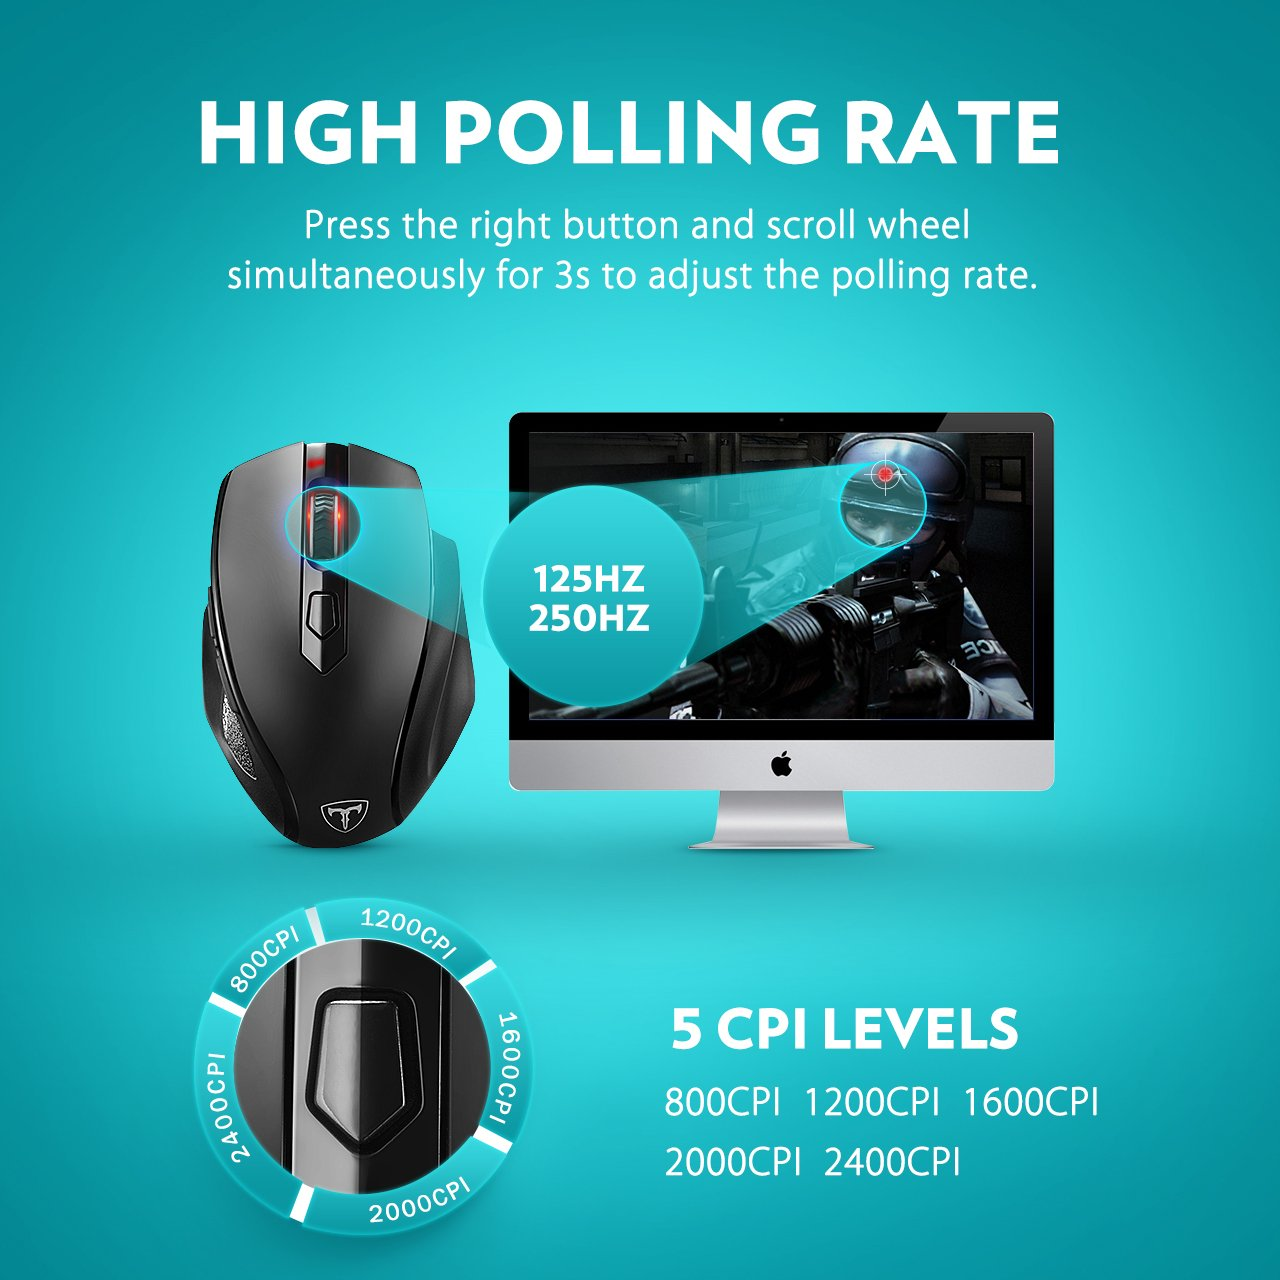 VicTsing Full Size Wireless Mouse with Nano USB Receiver, 5 Adjustable CPI Levels, 6 Buttons for Notebook, PC, Laptop, Computer, Macbook-Black by VicTsing (Image #3)